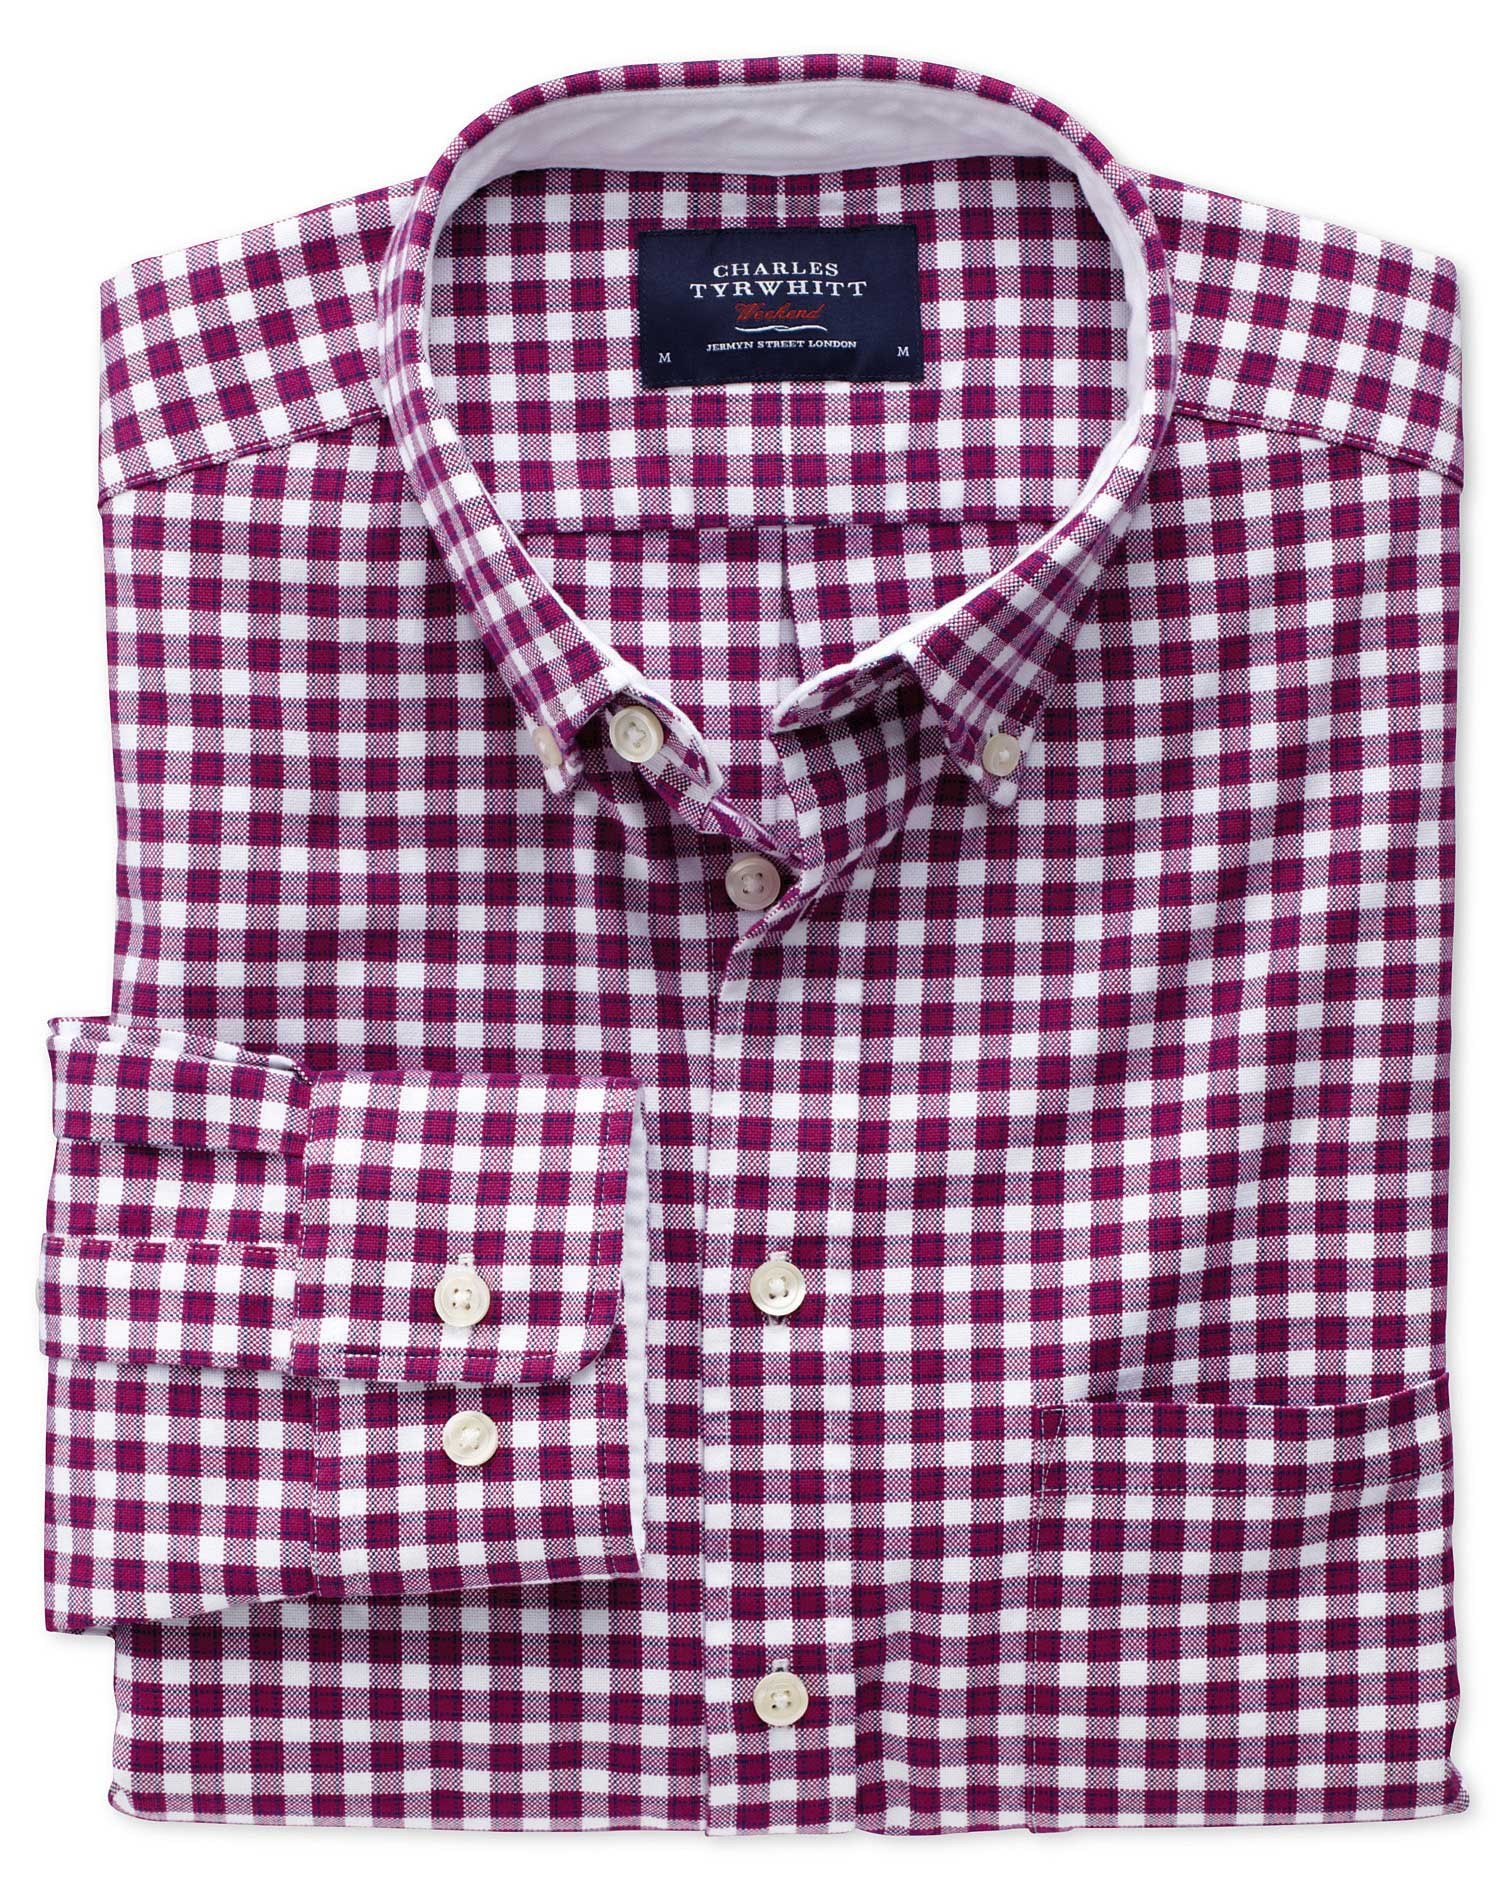 Classic Fit Berry Check Washed Oxford Cotton Shirt Single Cuff Size Small by Charles Tyrwhitt